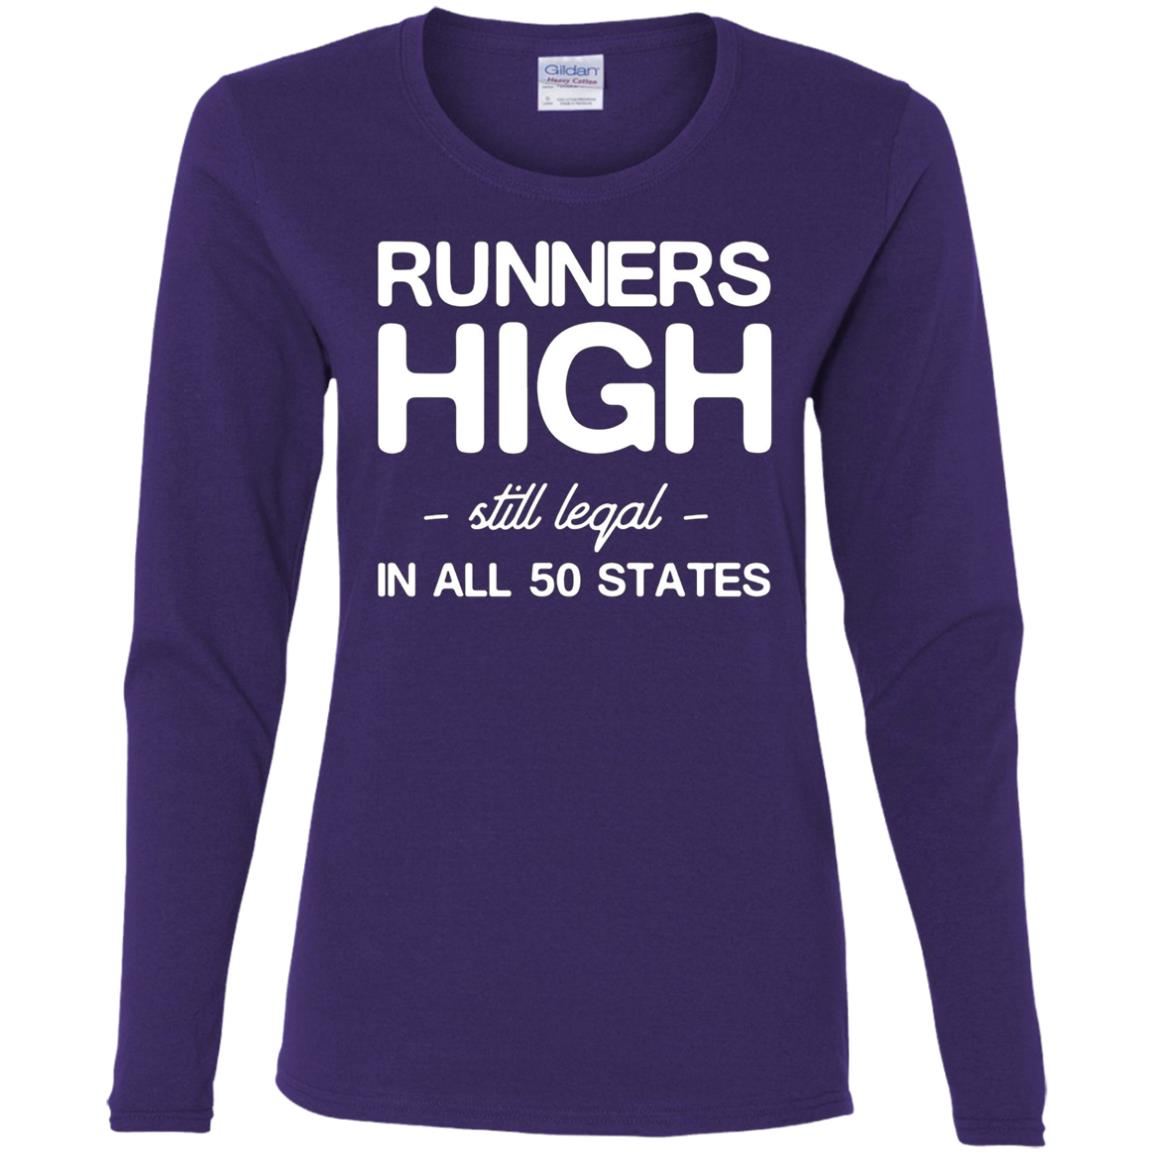 Runners high still legal in all 50 states Women Long Sleeve T-Shirt